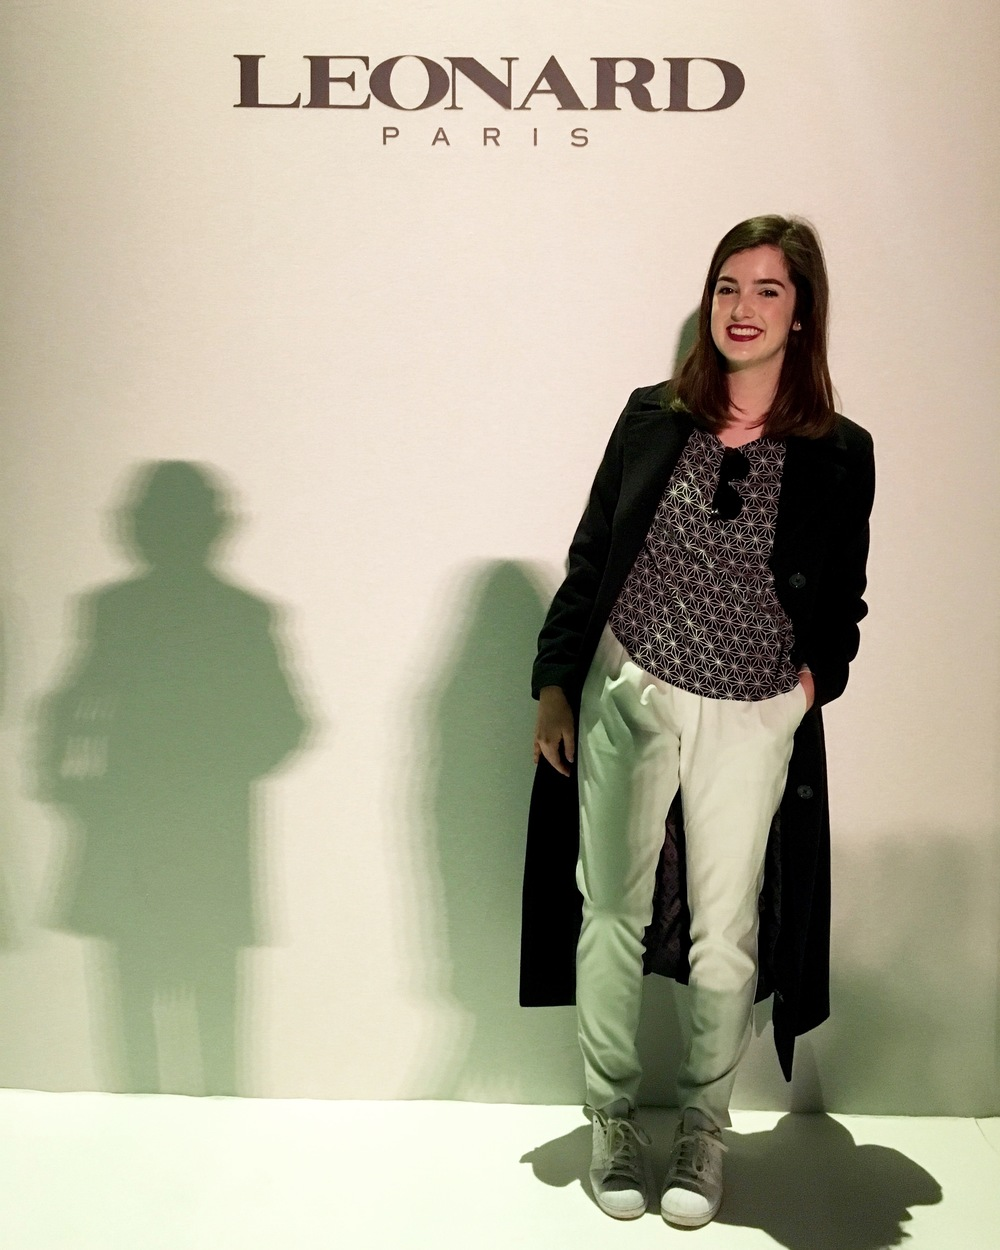 Outside photos taken inside and out of John Galliano, Inside at Leonard Paris. Amazing experiences all around! xx